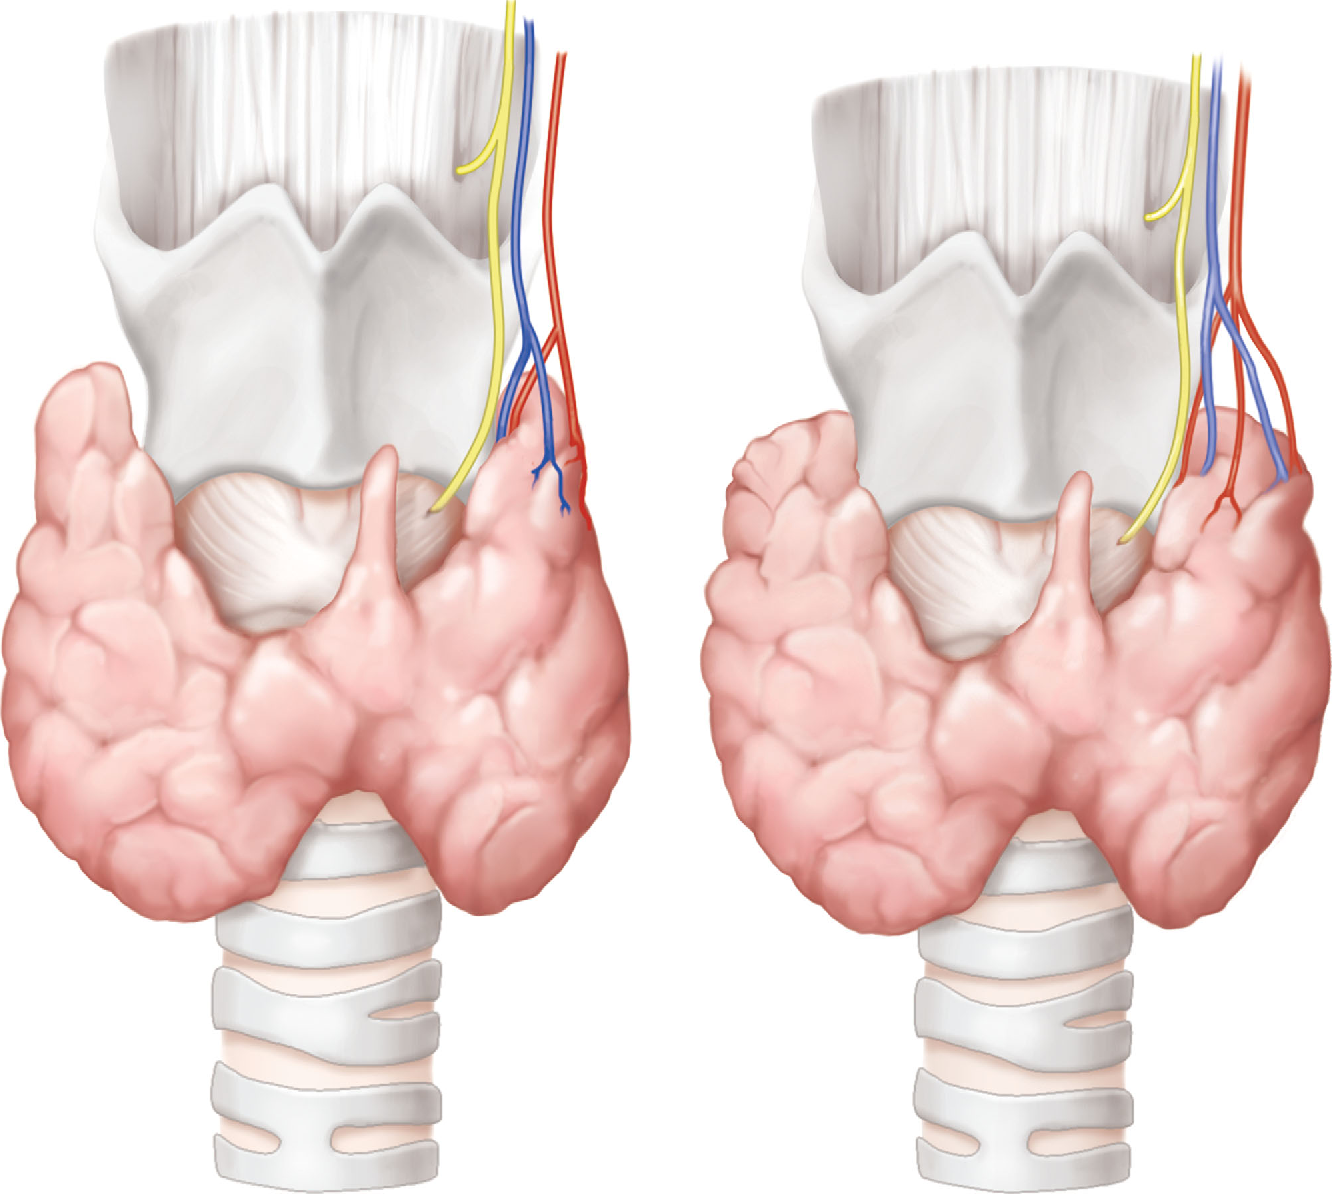 Proposal For Anatomical Classification Of The Superior Pole In